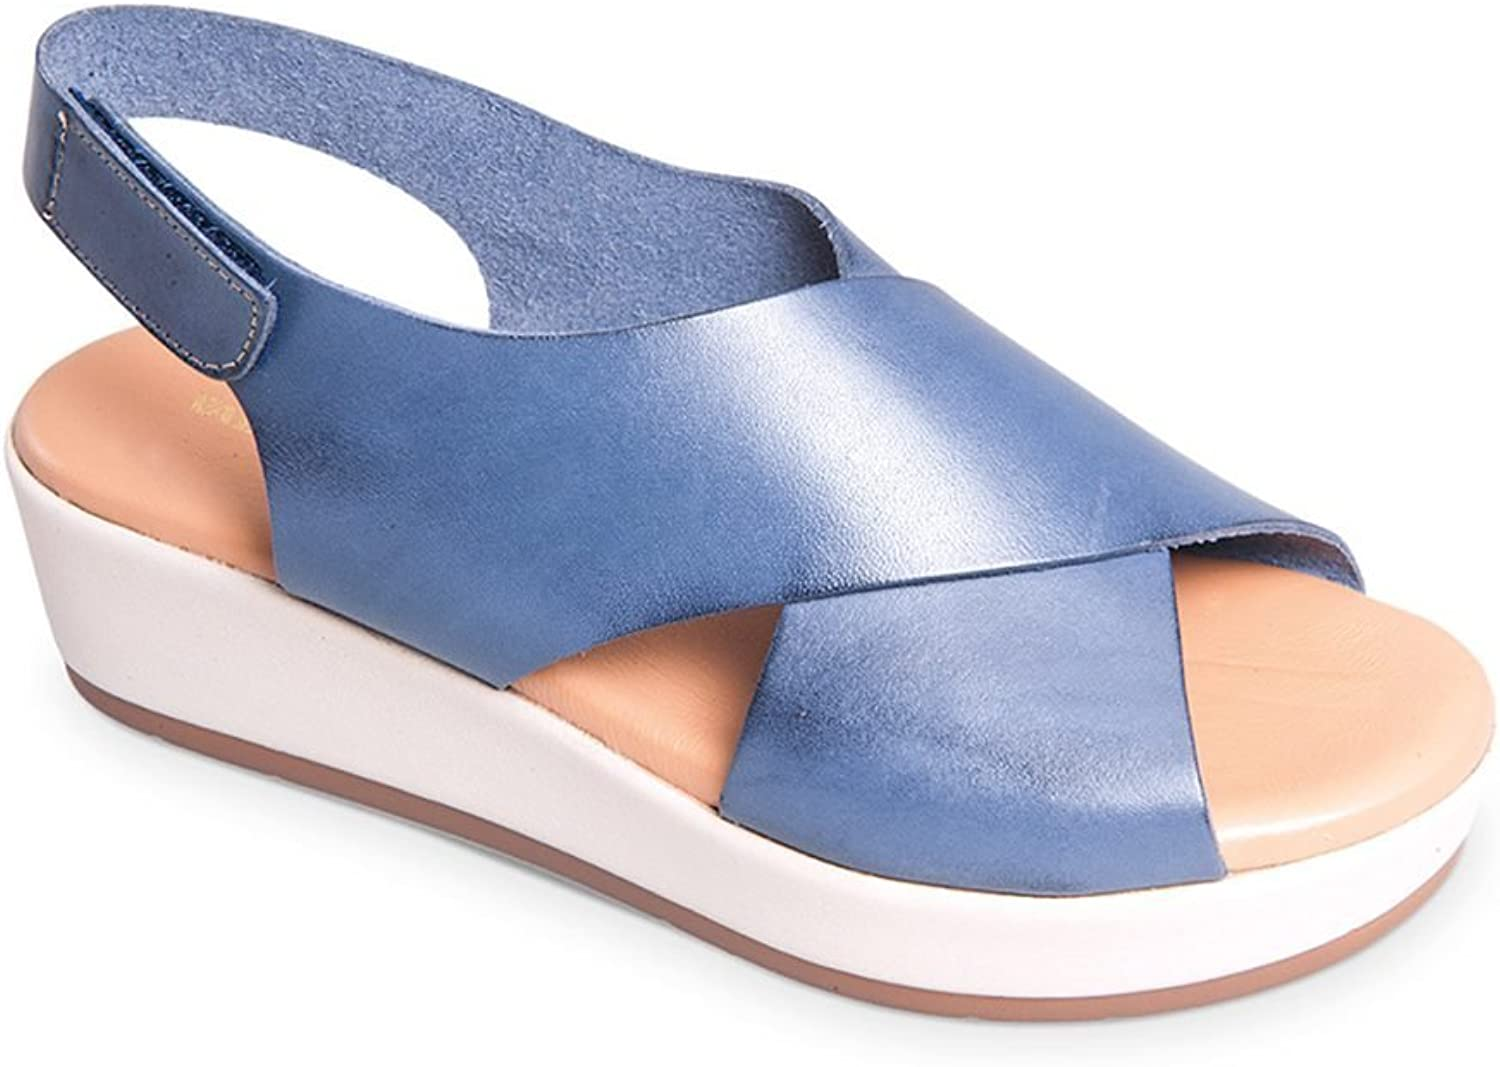 Vallegreen Woman's bluee Wedge shoes Sandal Made in